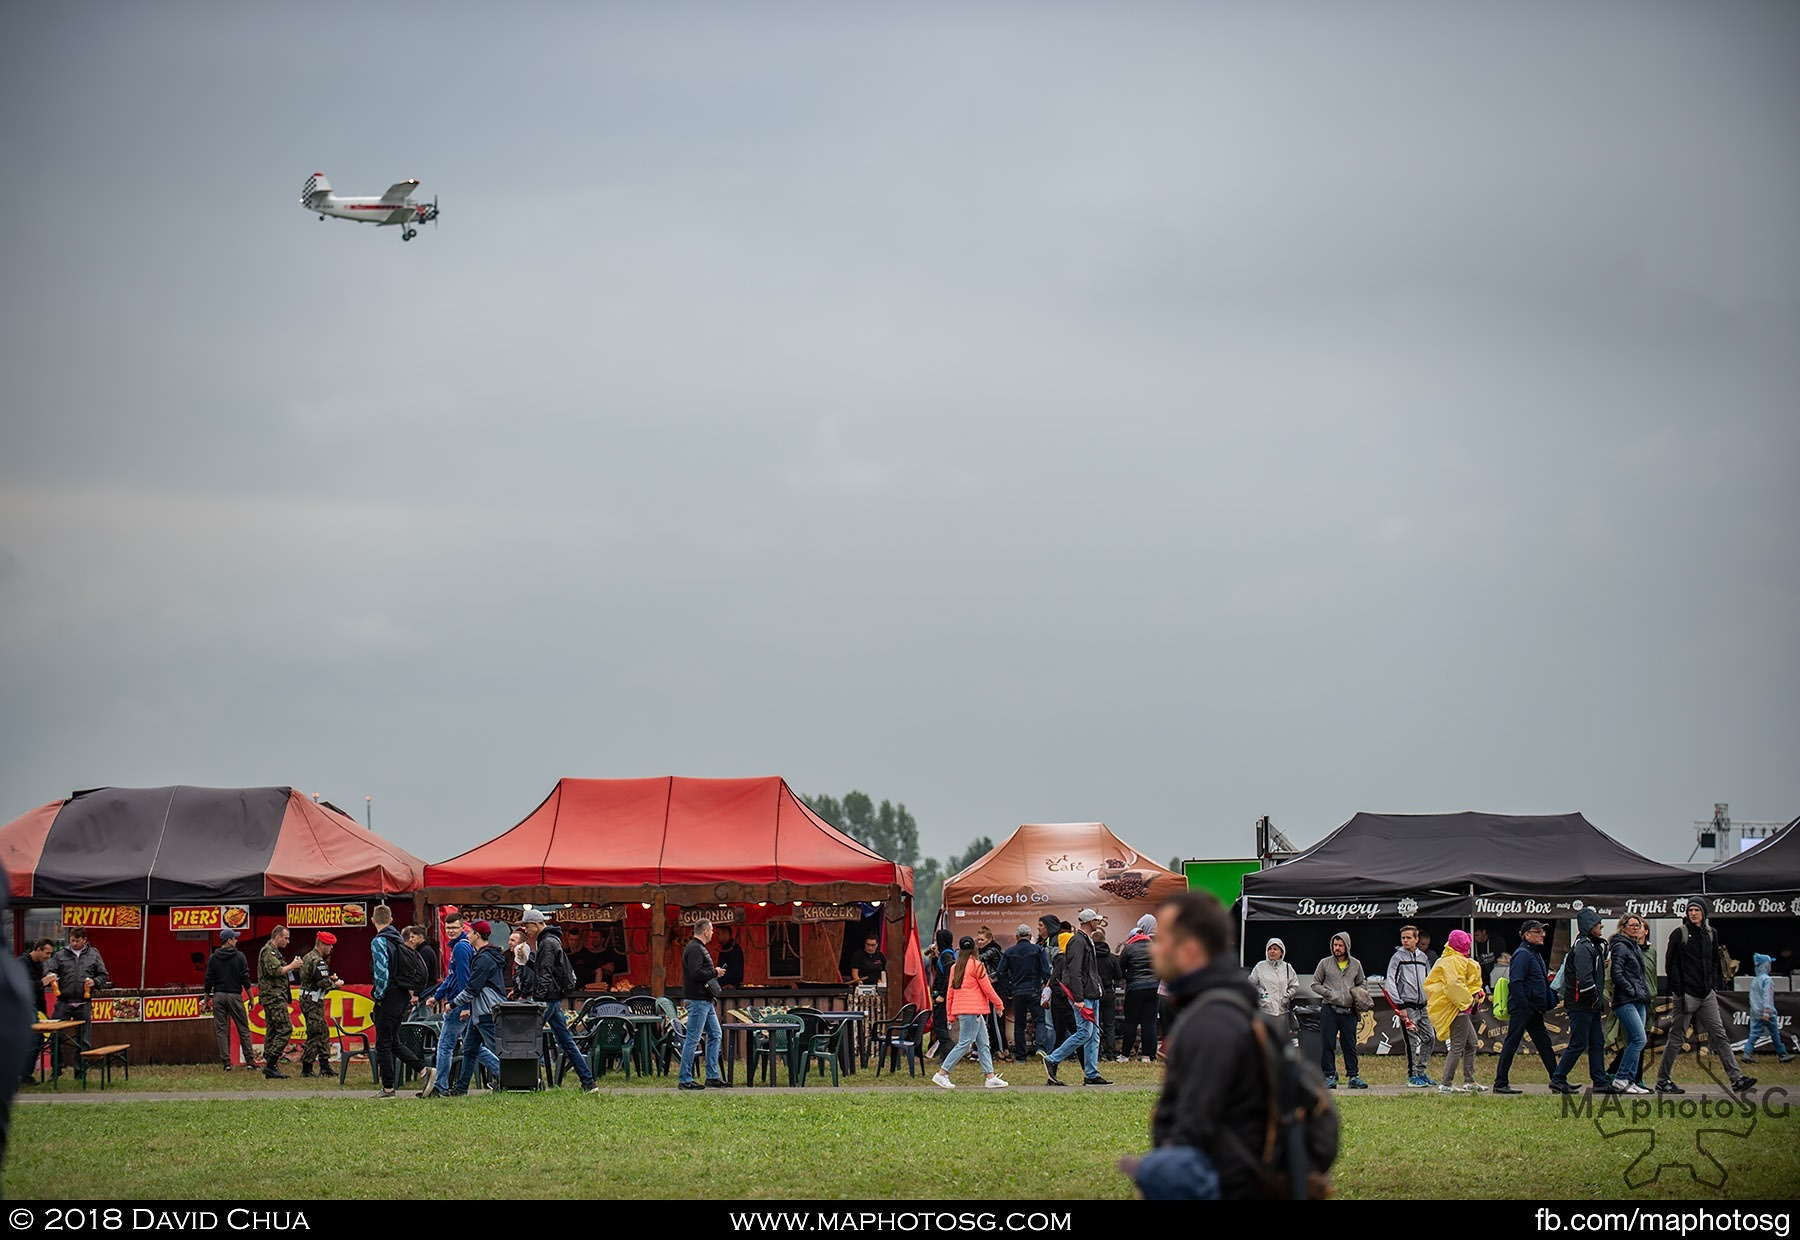 16. Antonov An-2 flies over a row of food kiosks at the Radom Airshow